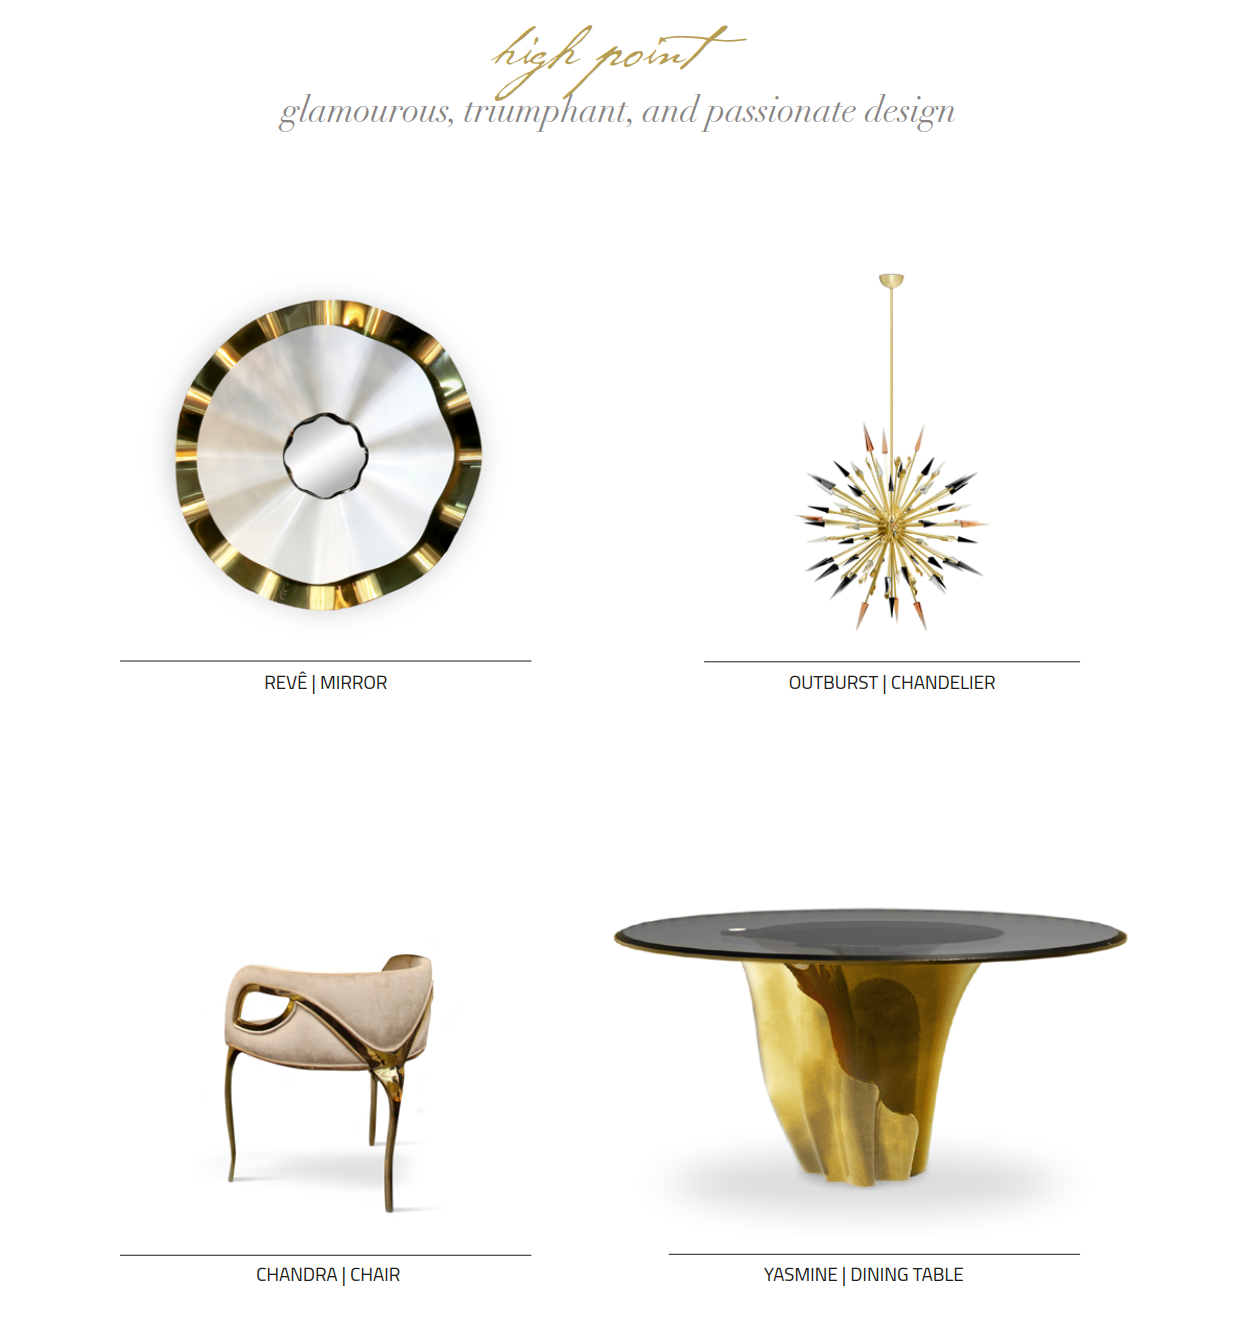 Empowering Luxury Furniture at High Point 2017 by KOKET - upholstered chairs, high-design casegoods, high end furniture, sunburst chandelier - women empowerment - reve mirror, sunburst mirror, gold metal dining chairs, luxury fining table, chandra chair